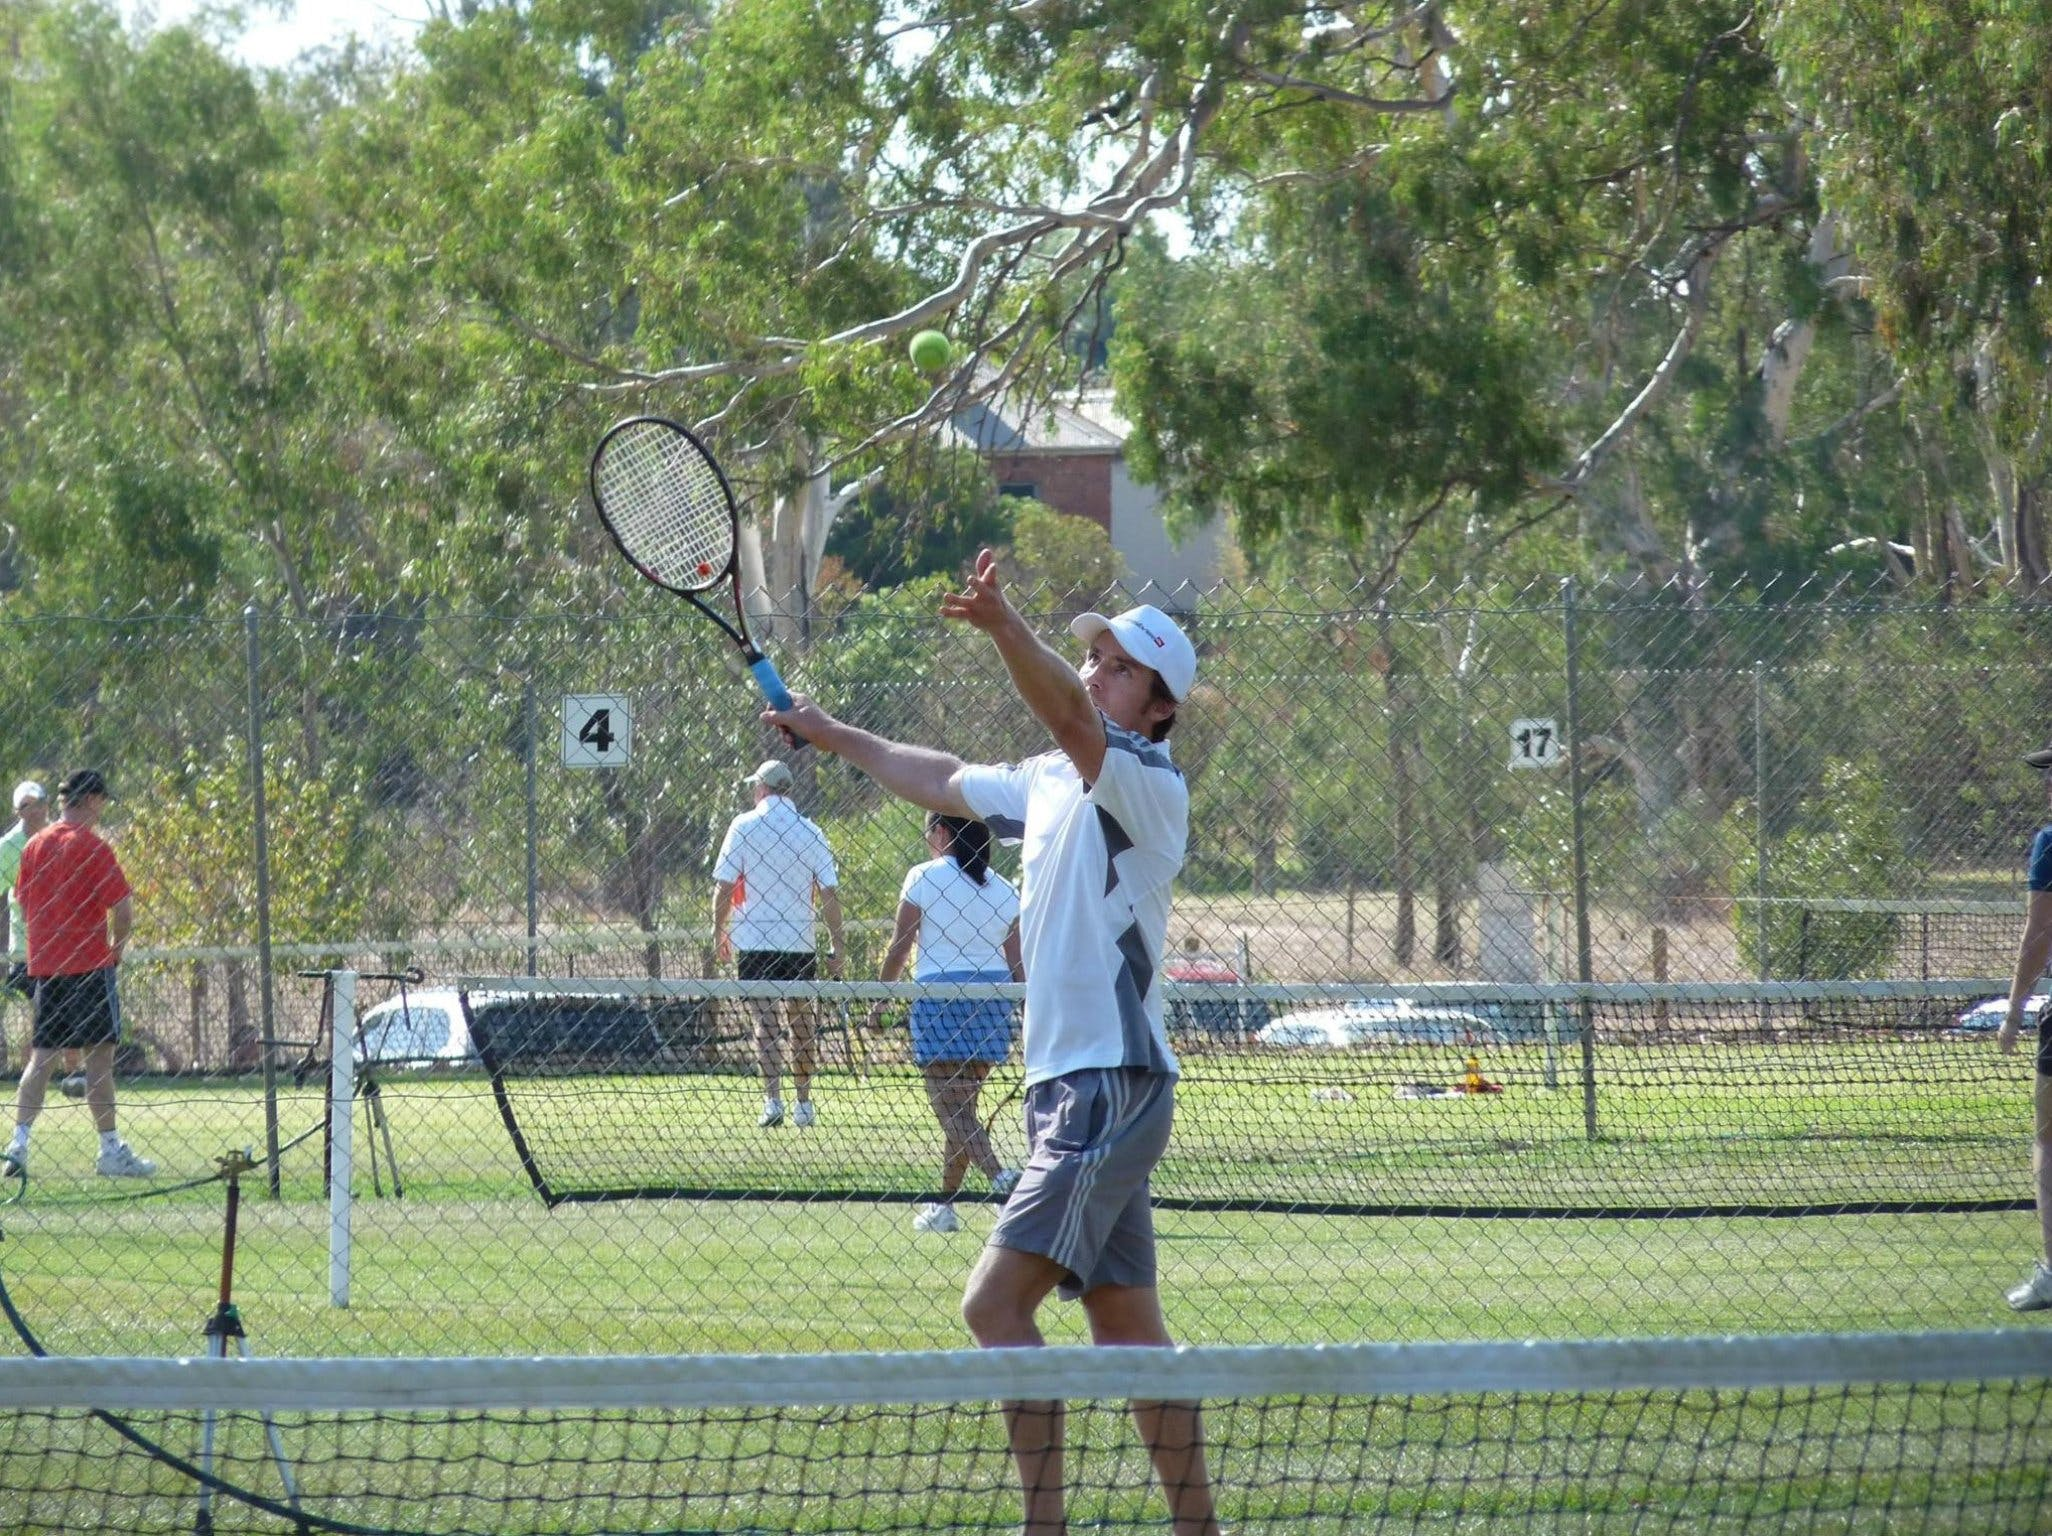 Corowa Easter Lawn Tennis Tournament - Accommodation in Surfers Paradise